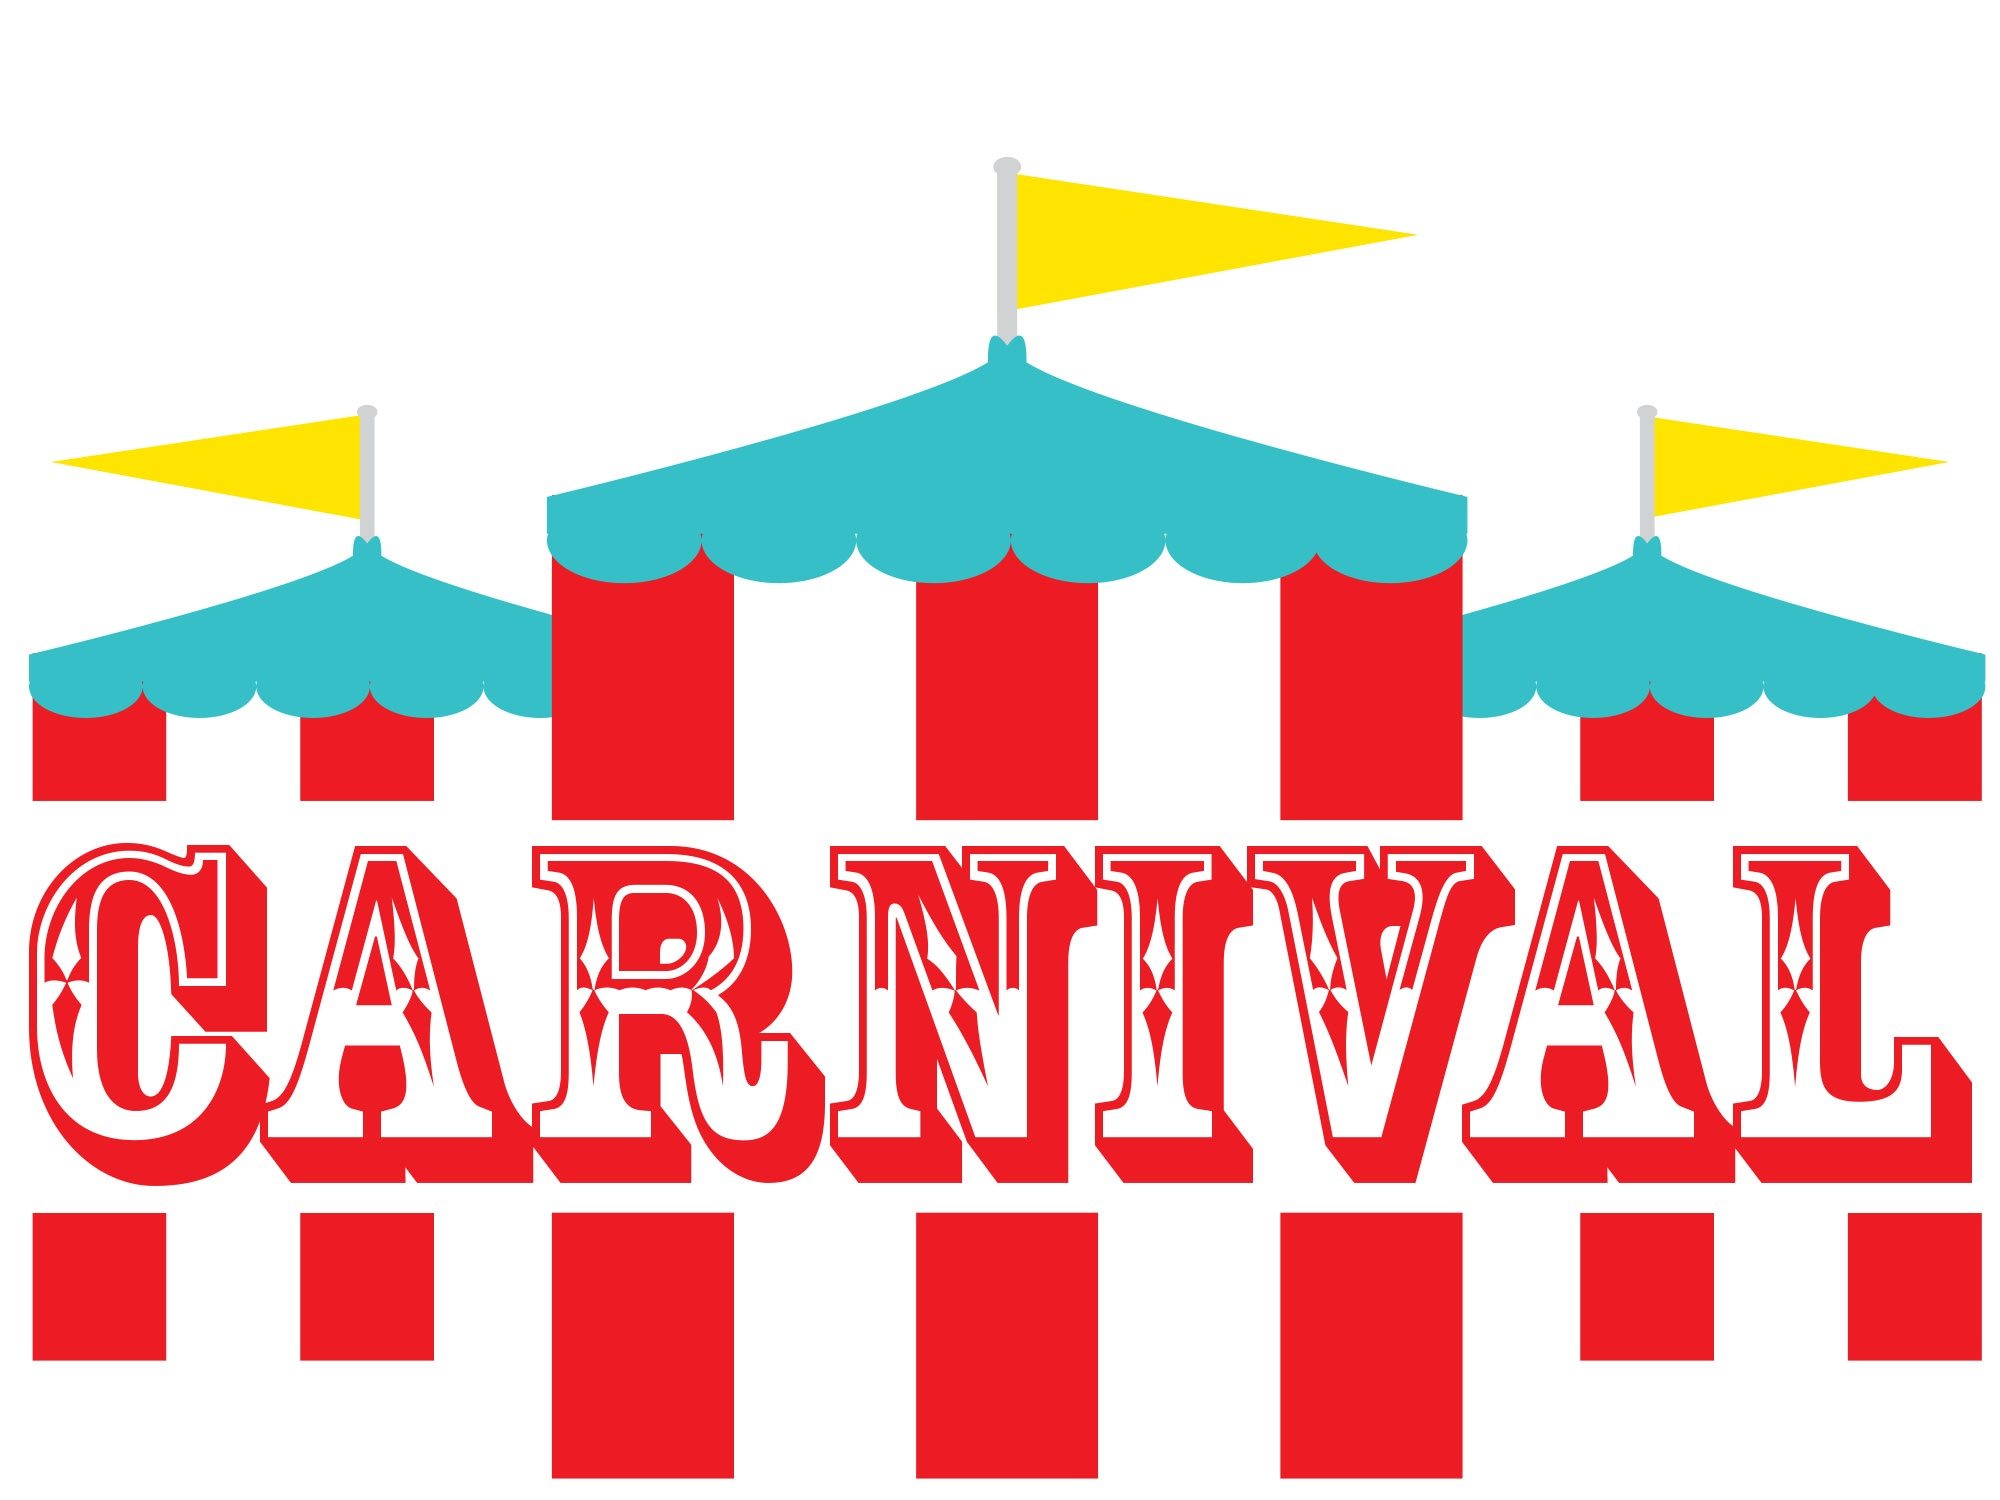 Tent clipart carnival ride 1645x1200px #1448852850 3 wallpapers Carnival